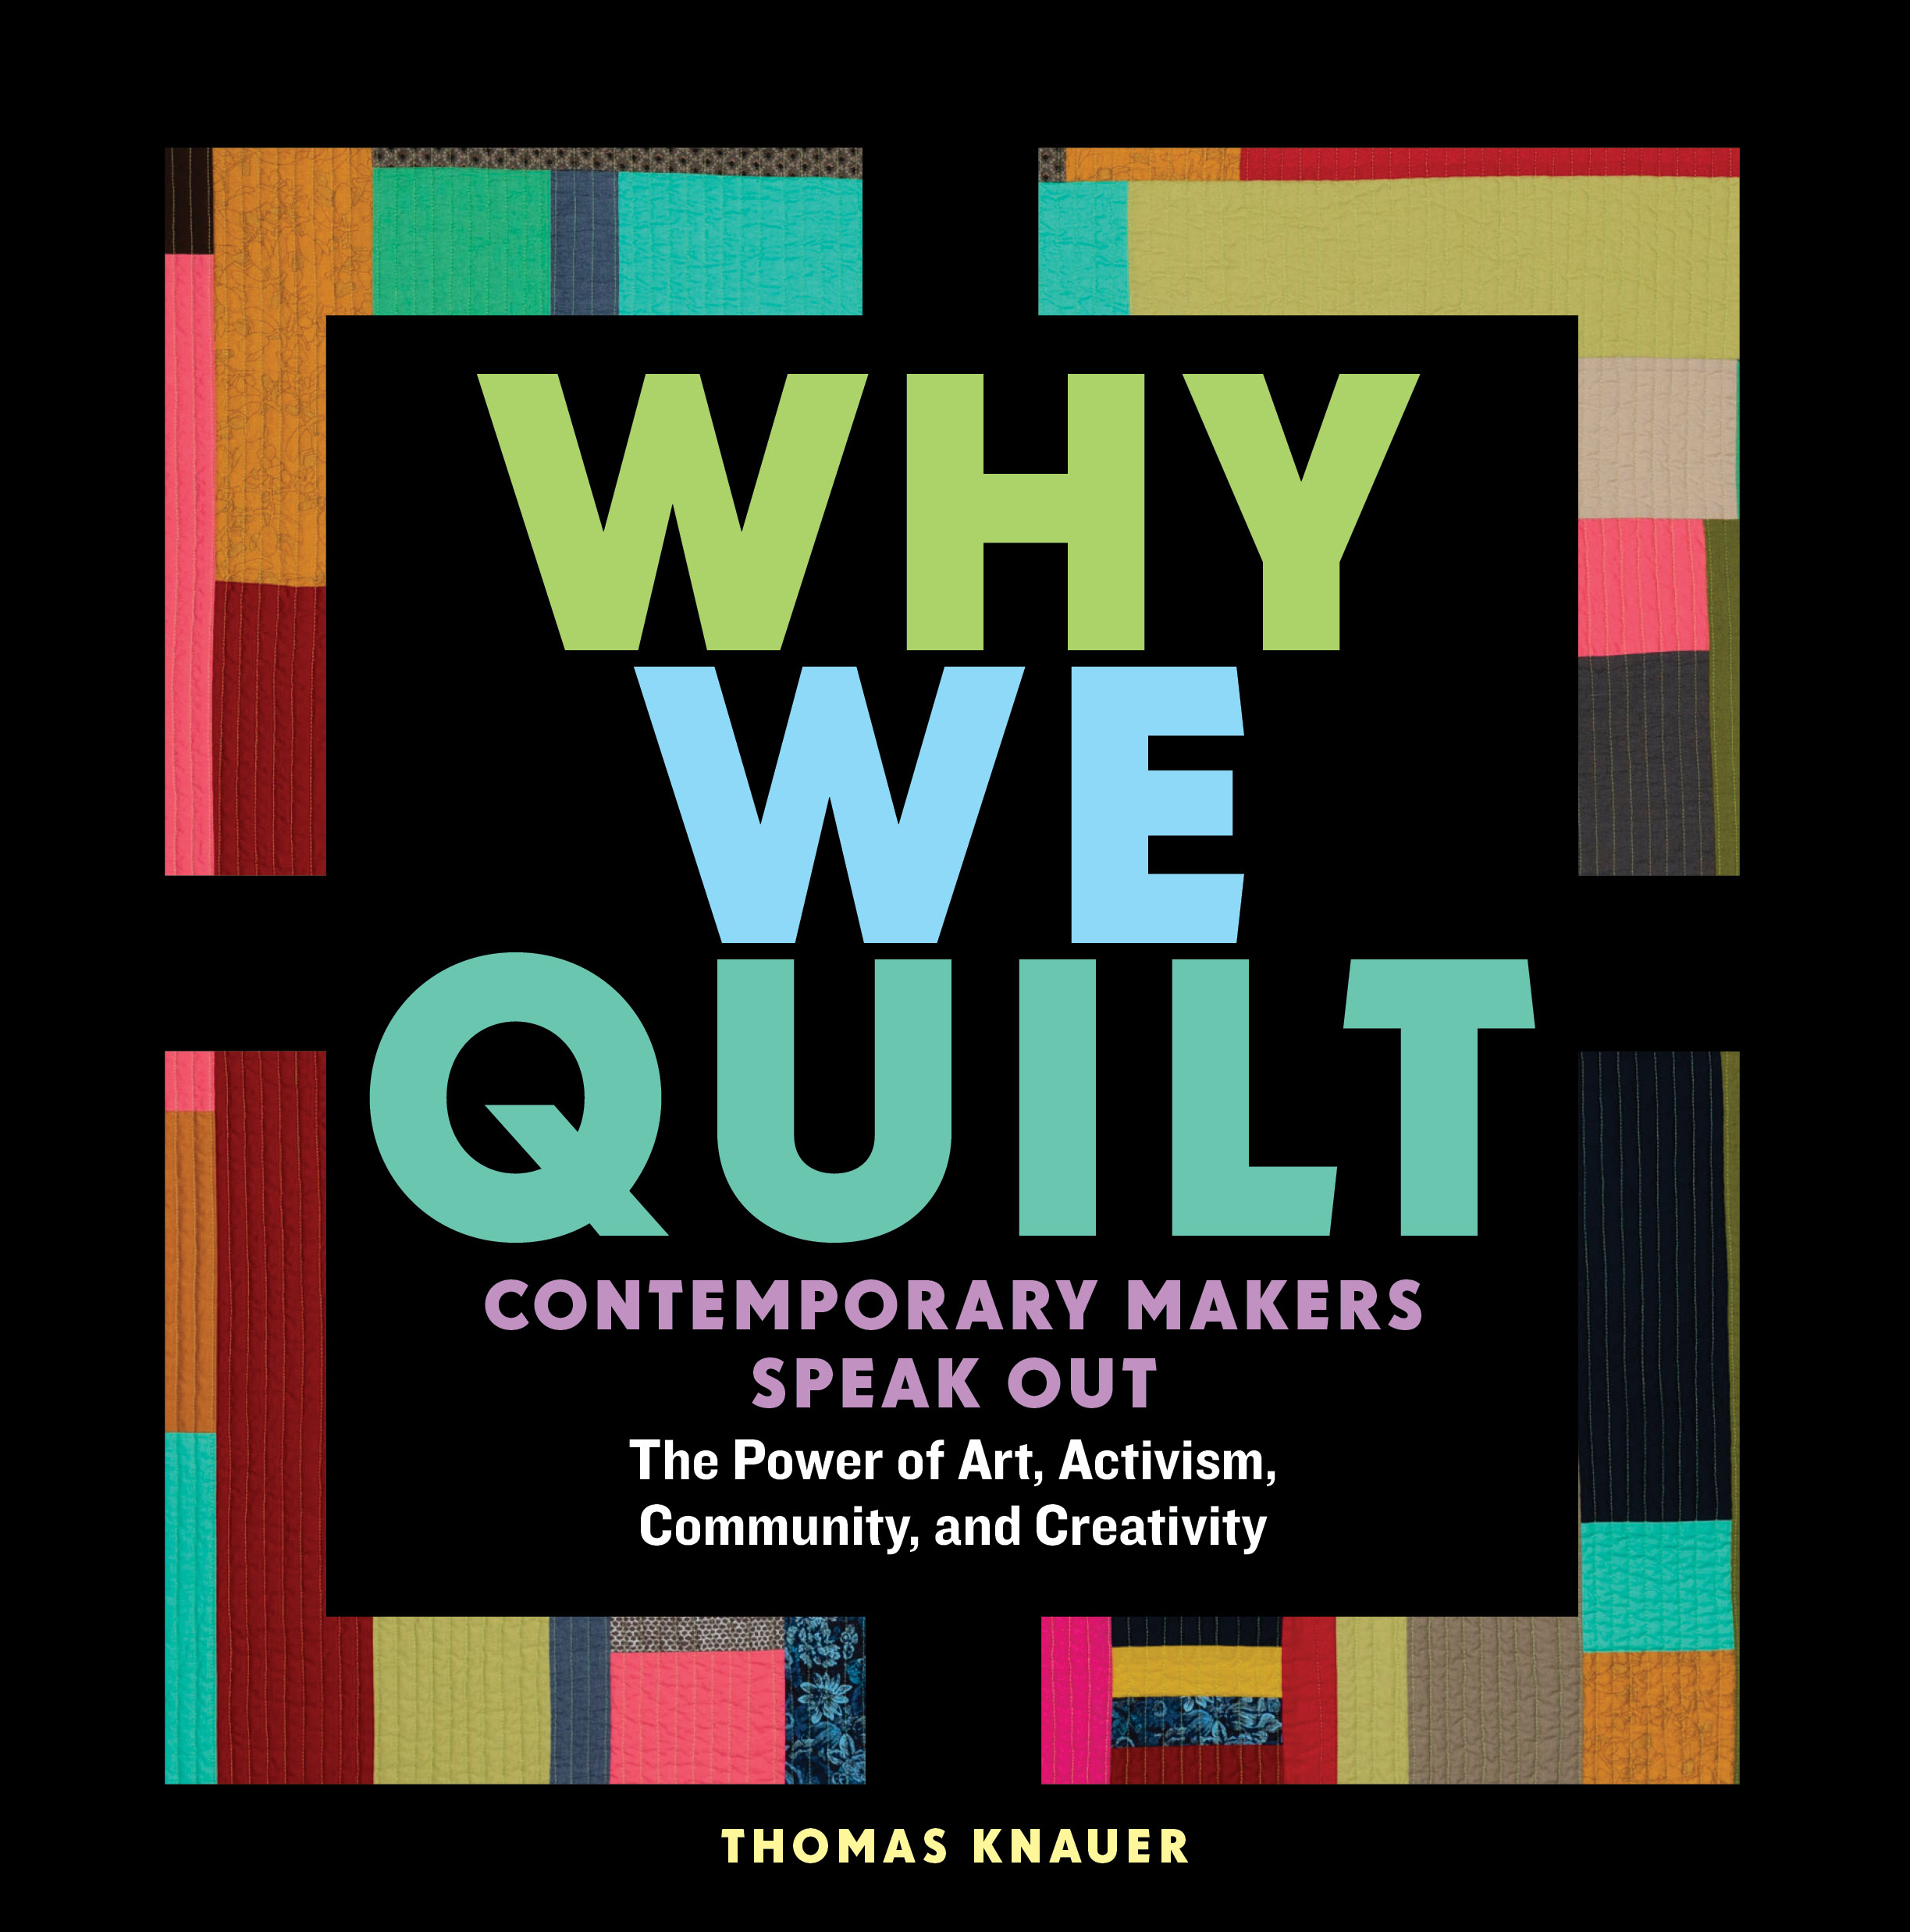 Why We Quilt Contemporary Makers Speak Out about the Power of Art, Activism, Community, and Creativity - Thomas Knauer